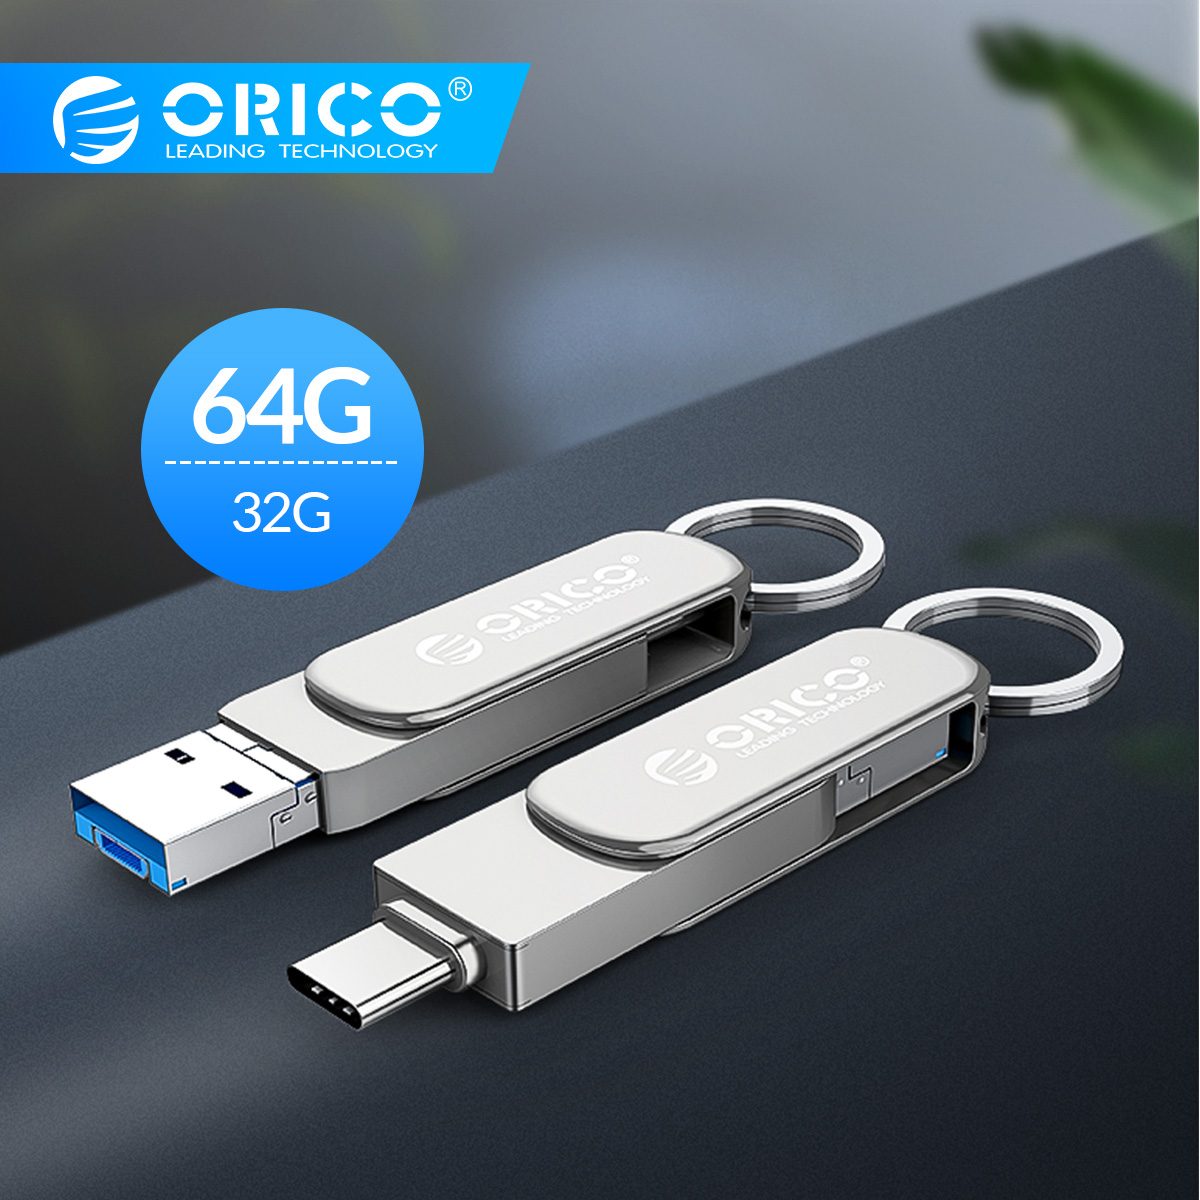 ORICO 3-In-1 OTG USB Flash Drive Type-C USB3.0 Micro-B 64GB 32GB USB3.0 Flash Memory USB Stick Flash U Disk For Phone/Tablet/PC